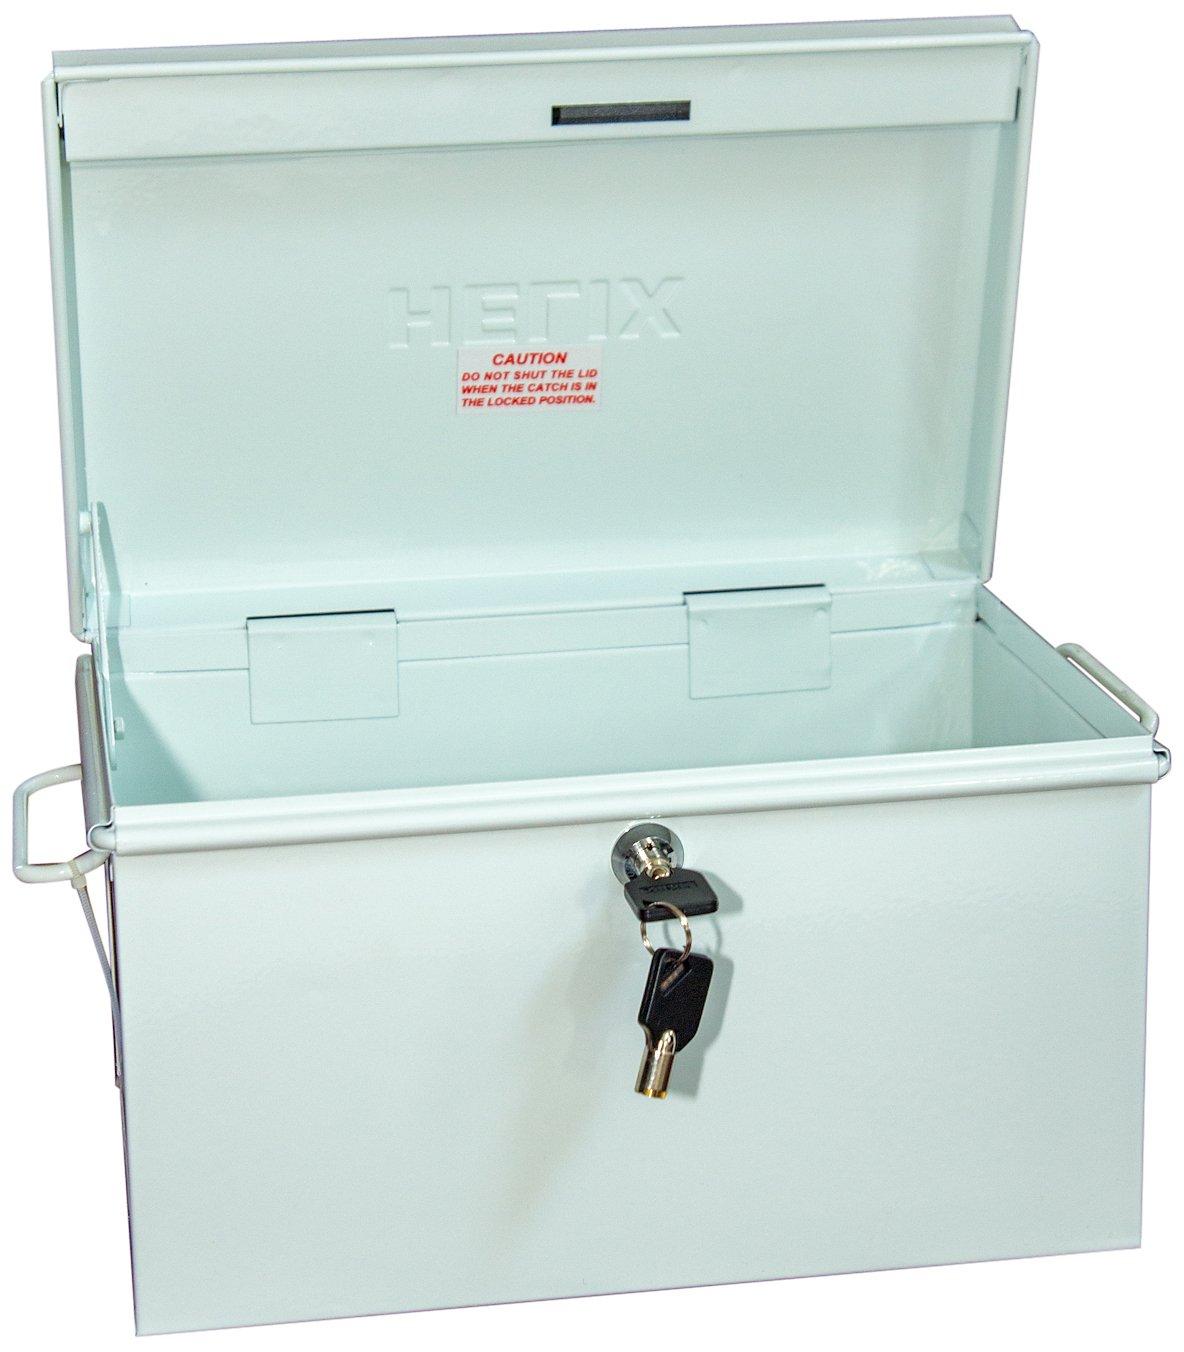 Helix Locking Prescription Drug Security Chest with Tether, Heavy-Duty Steel Construction, Size 12.5 x 7.25 x 8 inches – White (32480) by Maped Helix USA